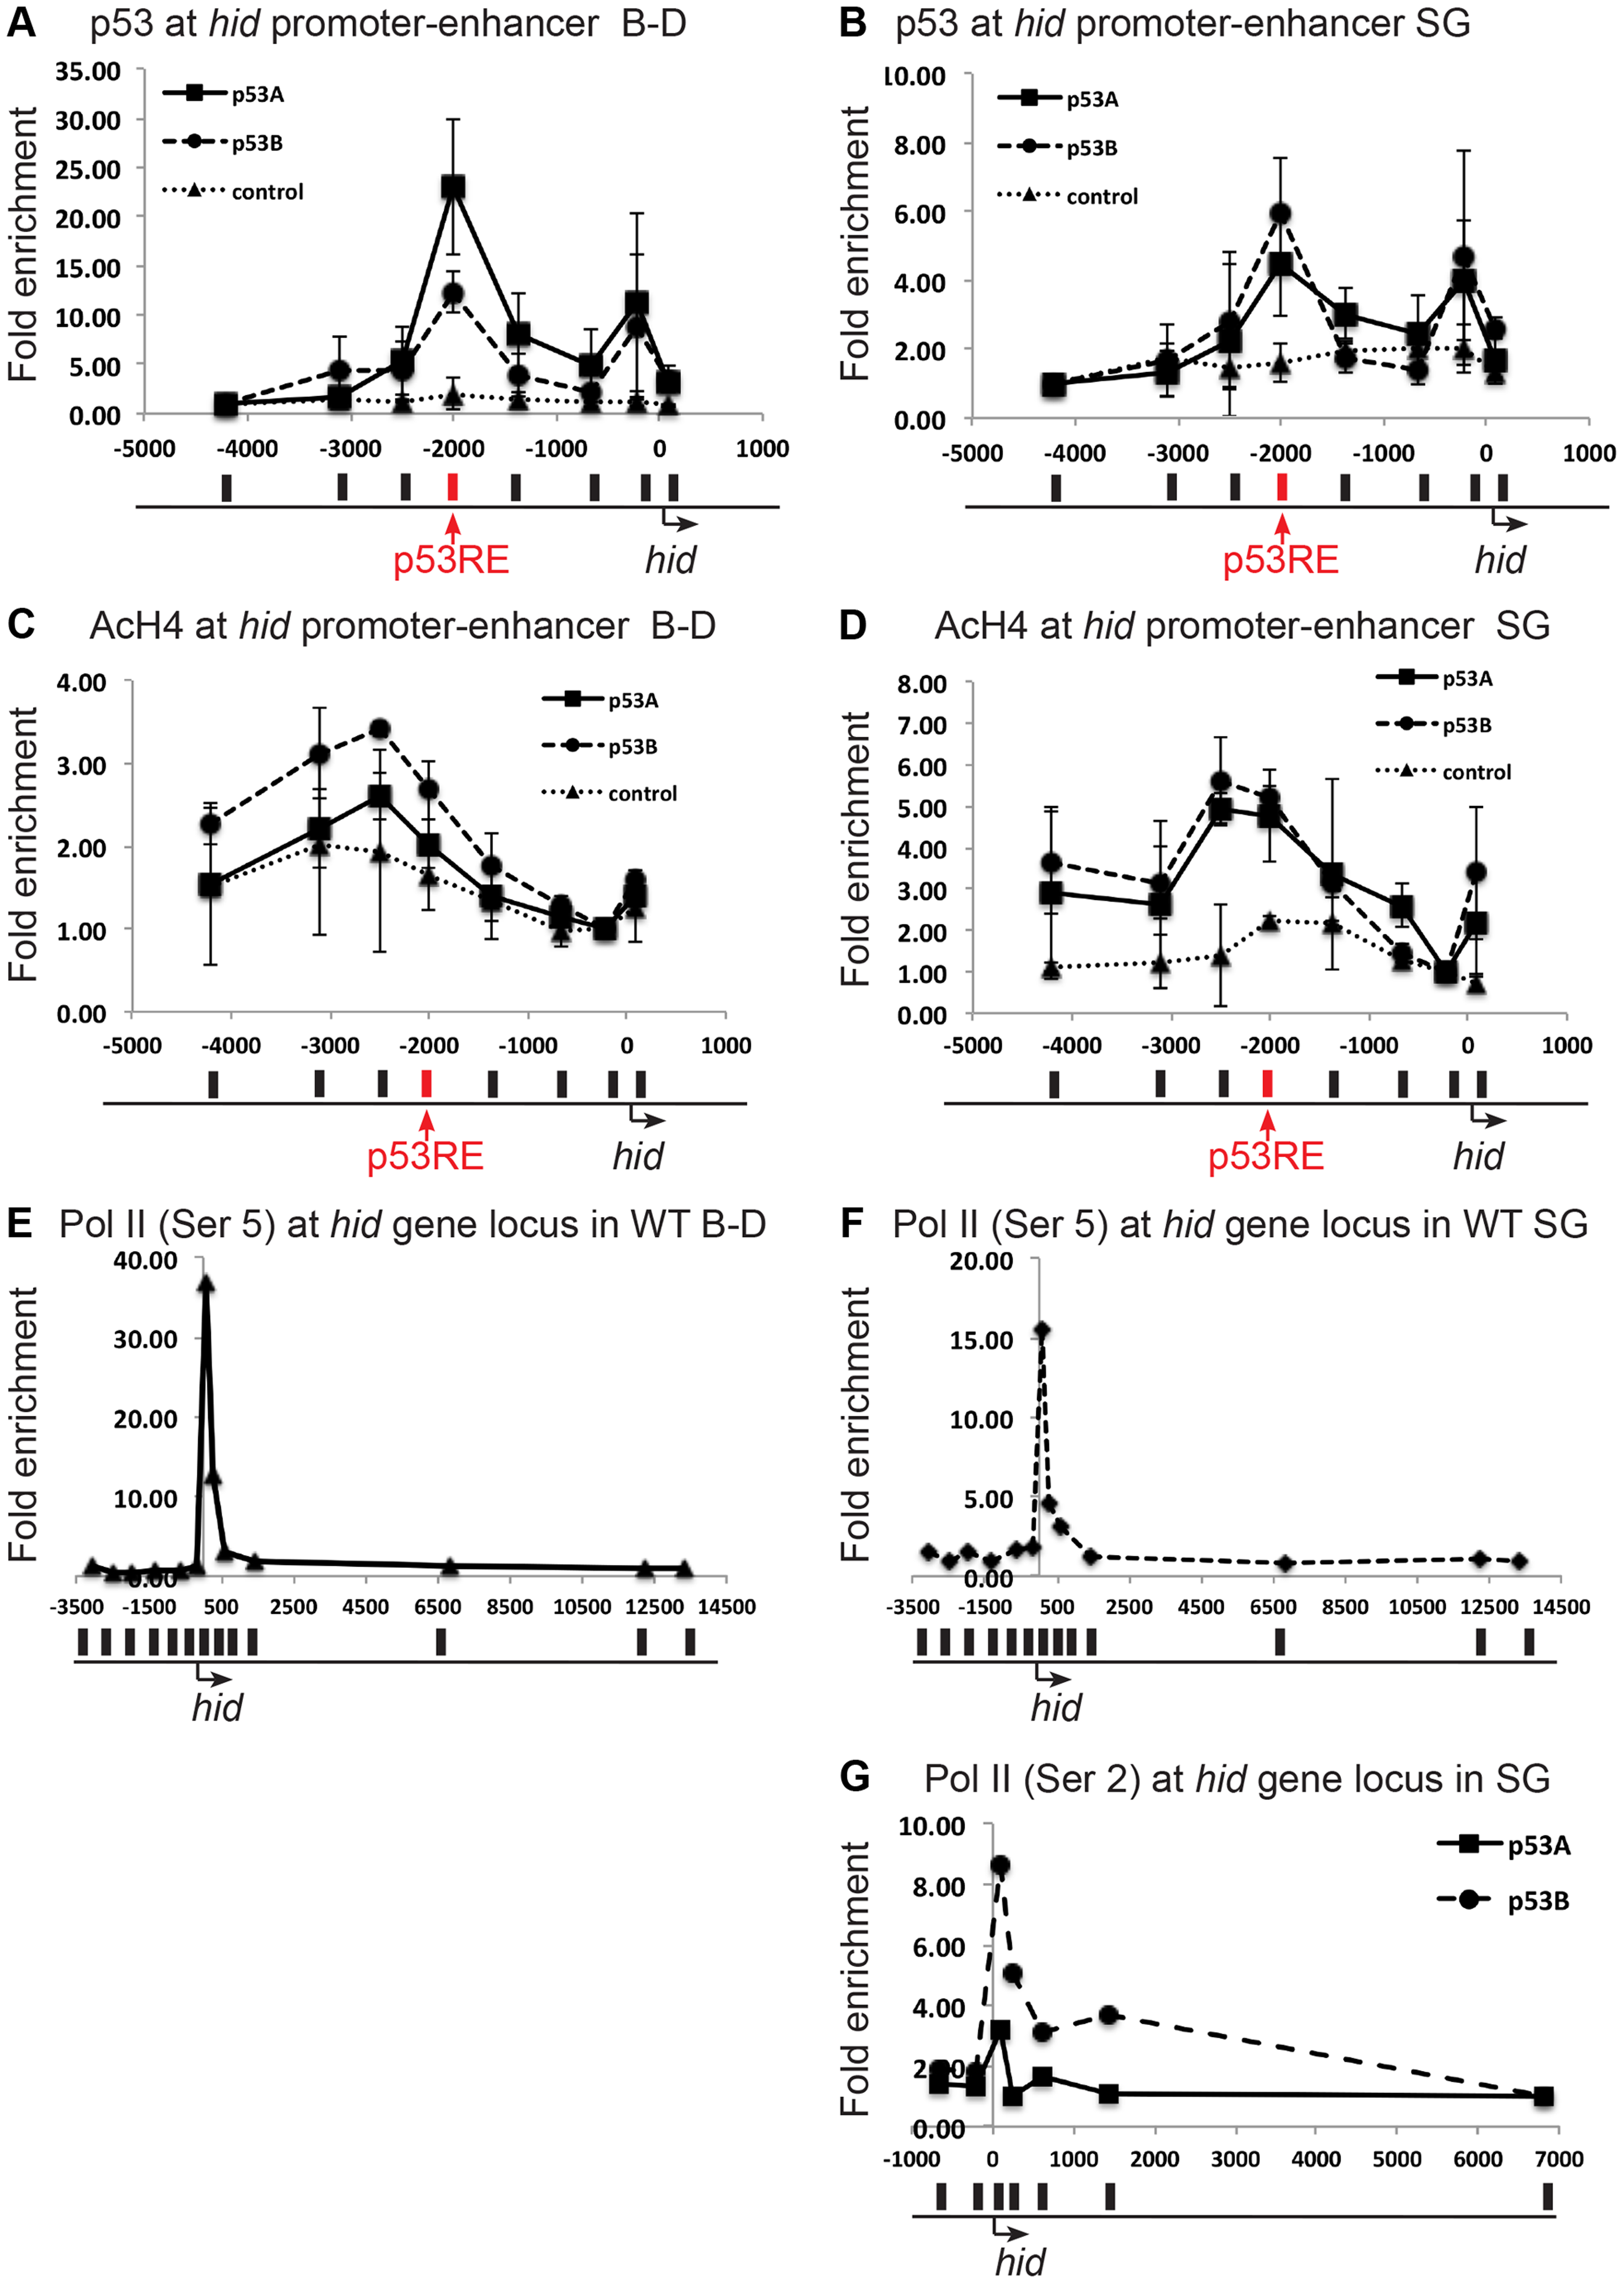 Both over-expressed p53A and p53B bind and recruit acetylation to the <i>hid</i> gene, but p53B is better at activating elongation of a paused RNA Pol II.